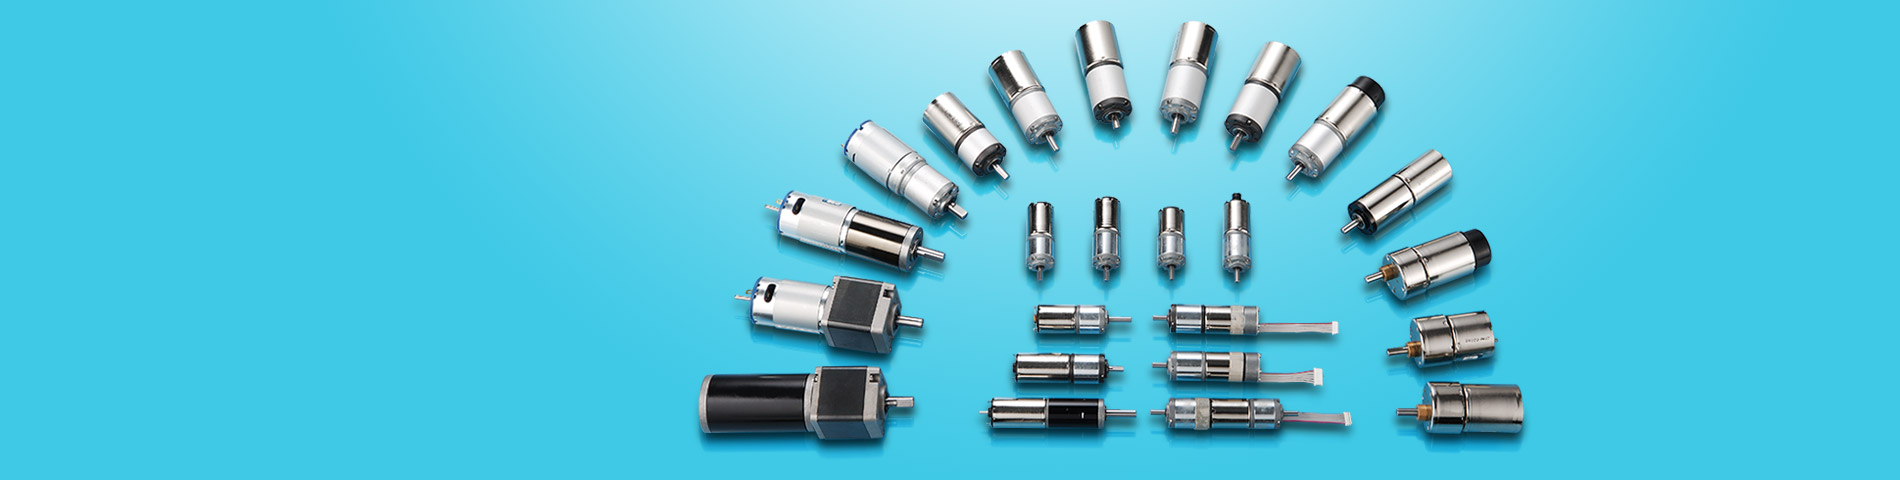 To Supply Small DC Geared Motors for a wide variety of applications